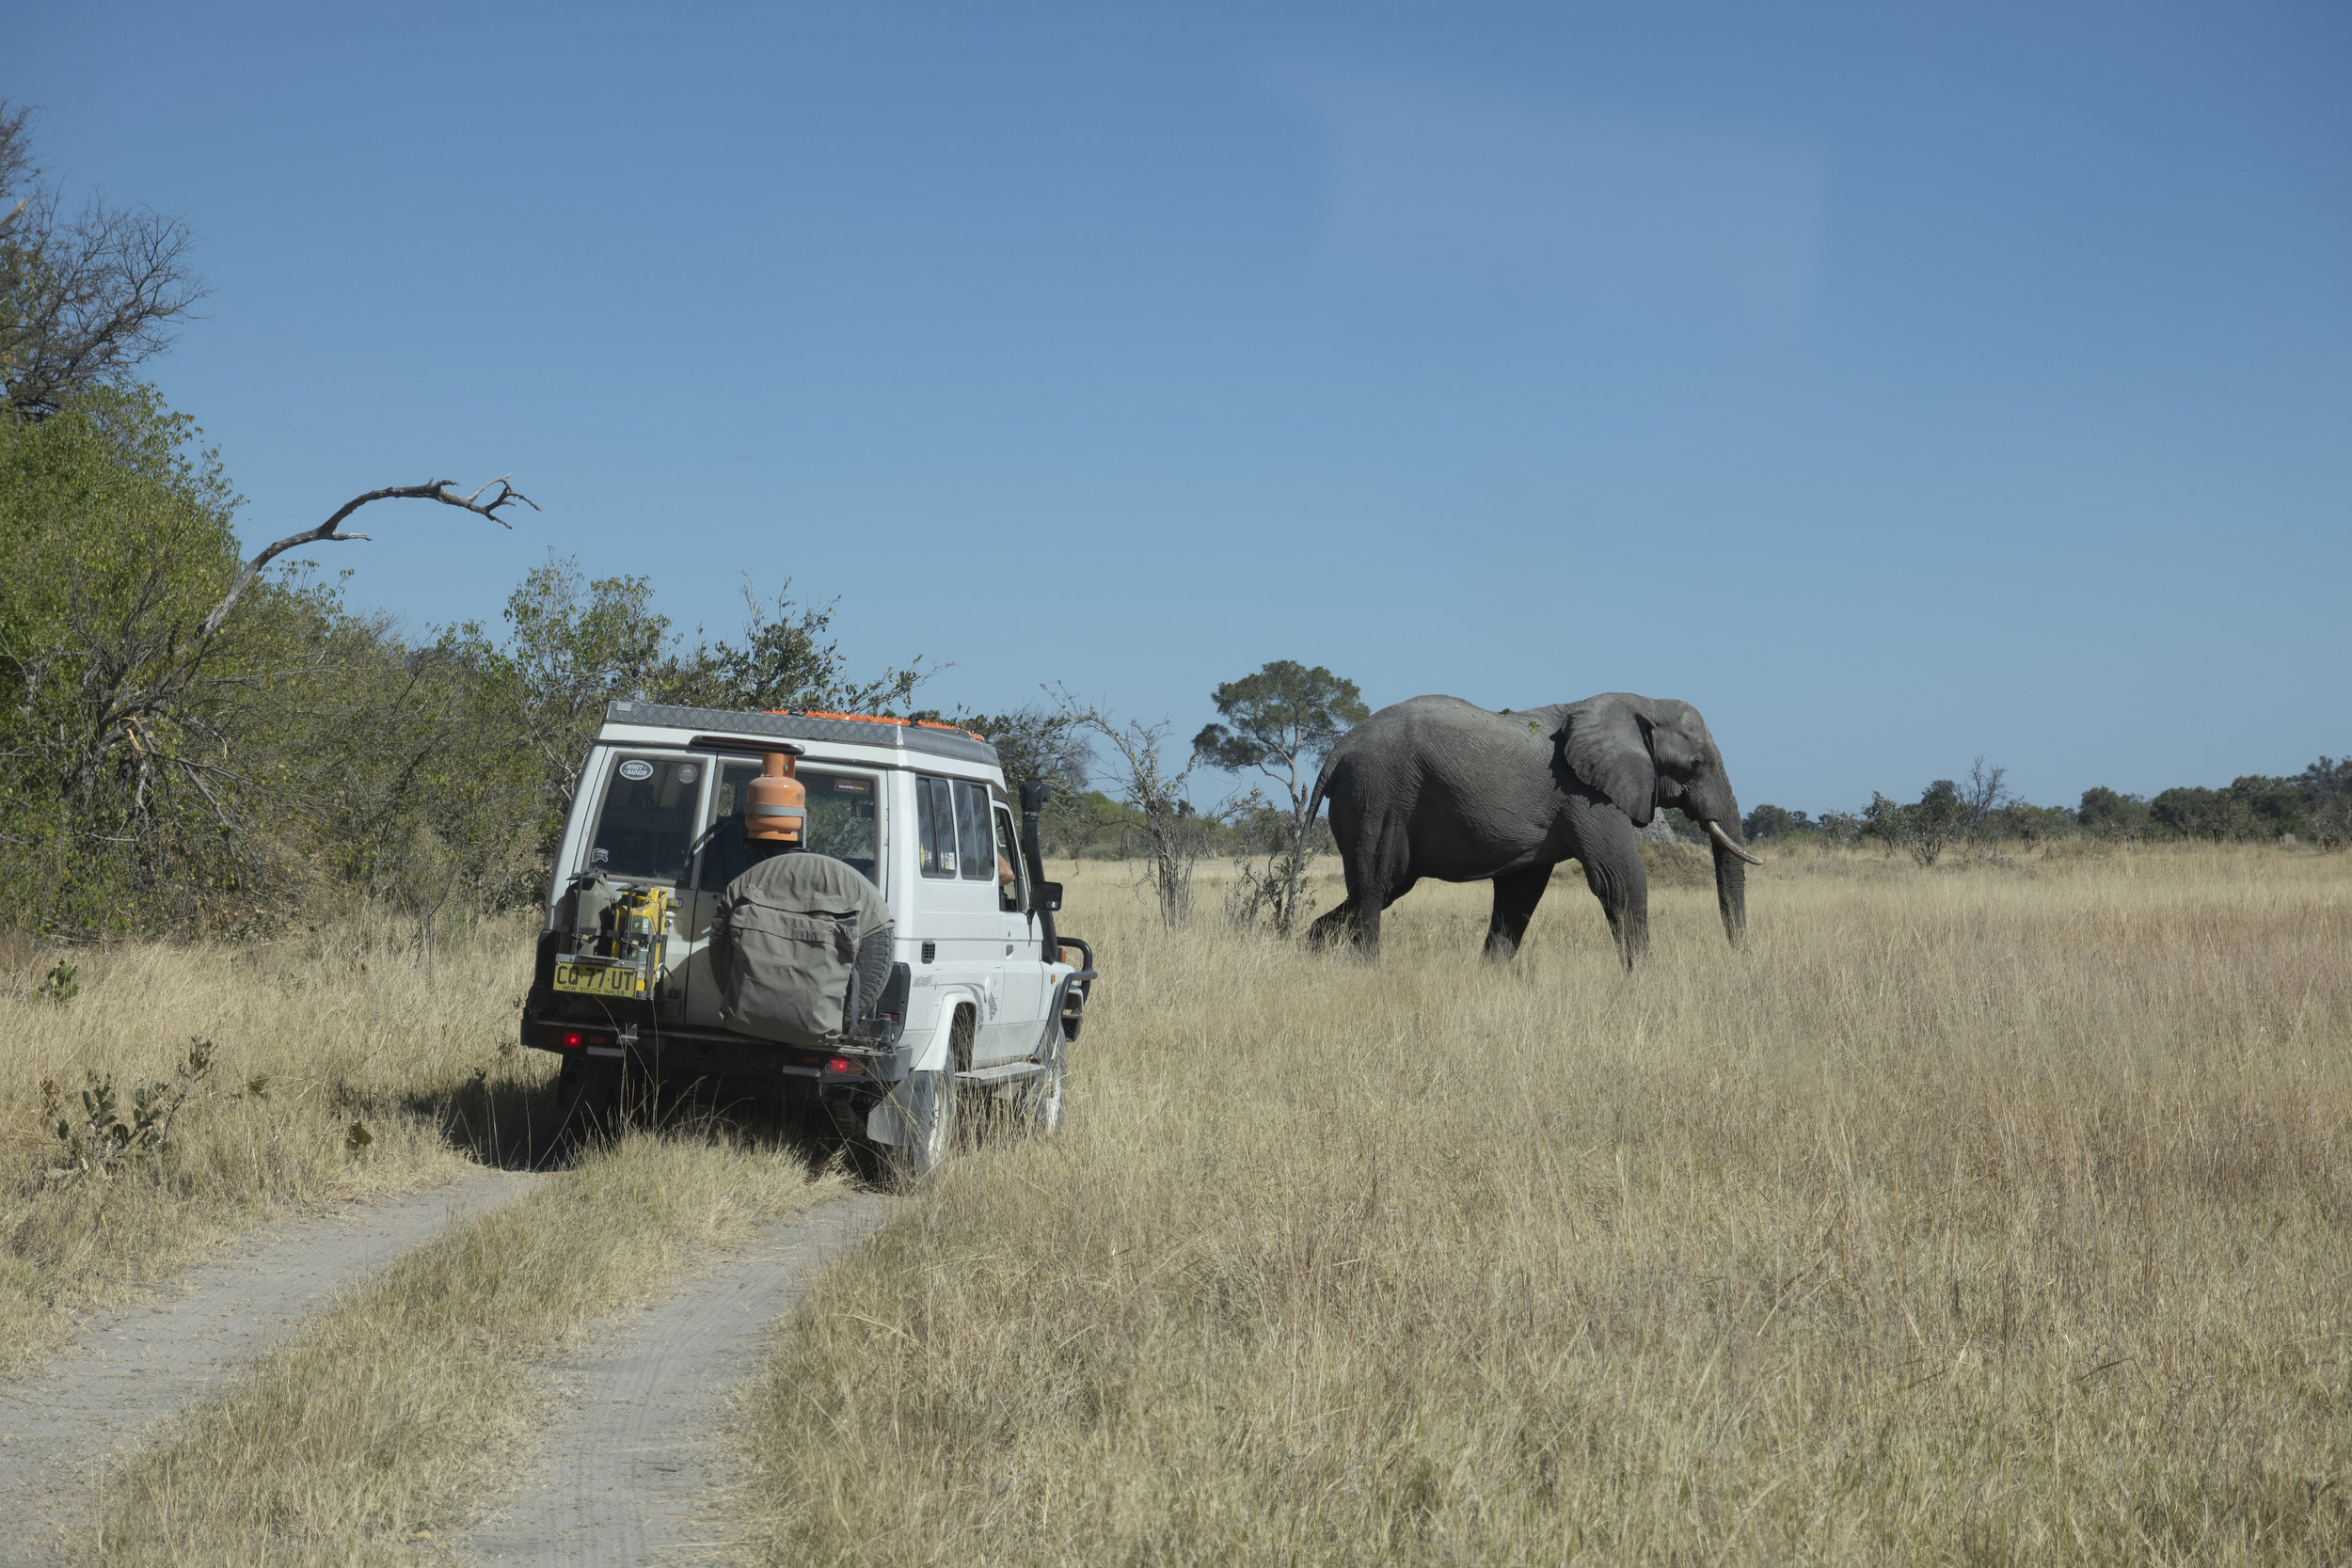 Elephant crossing copy.jpg